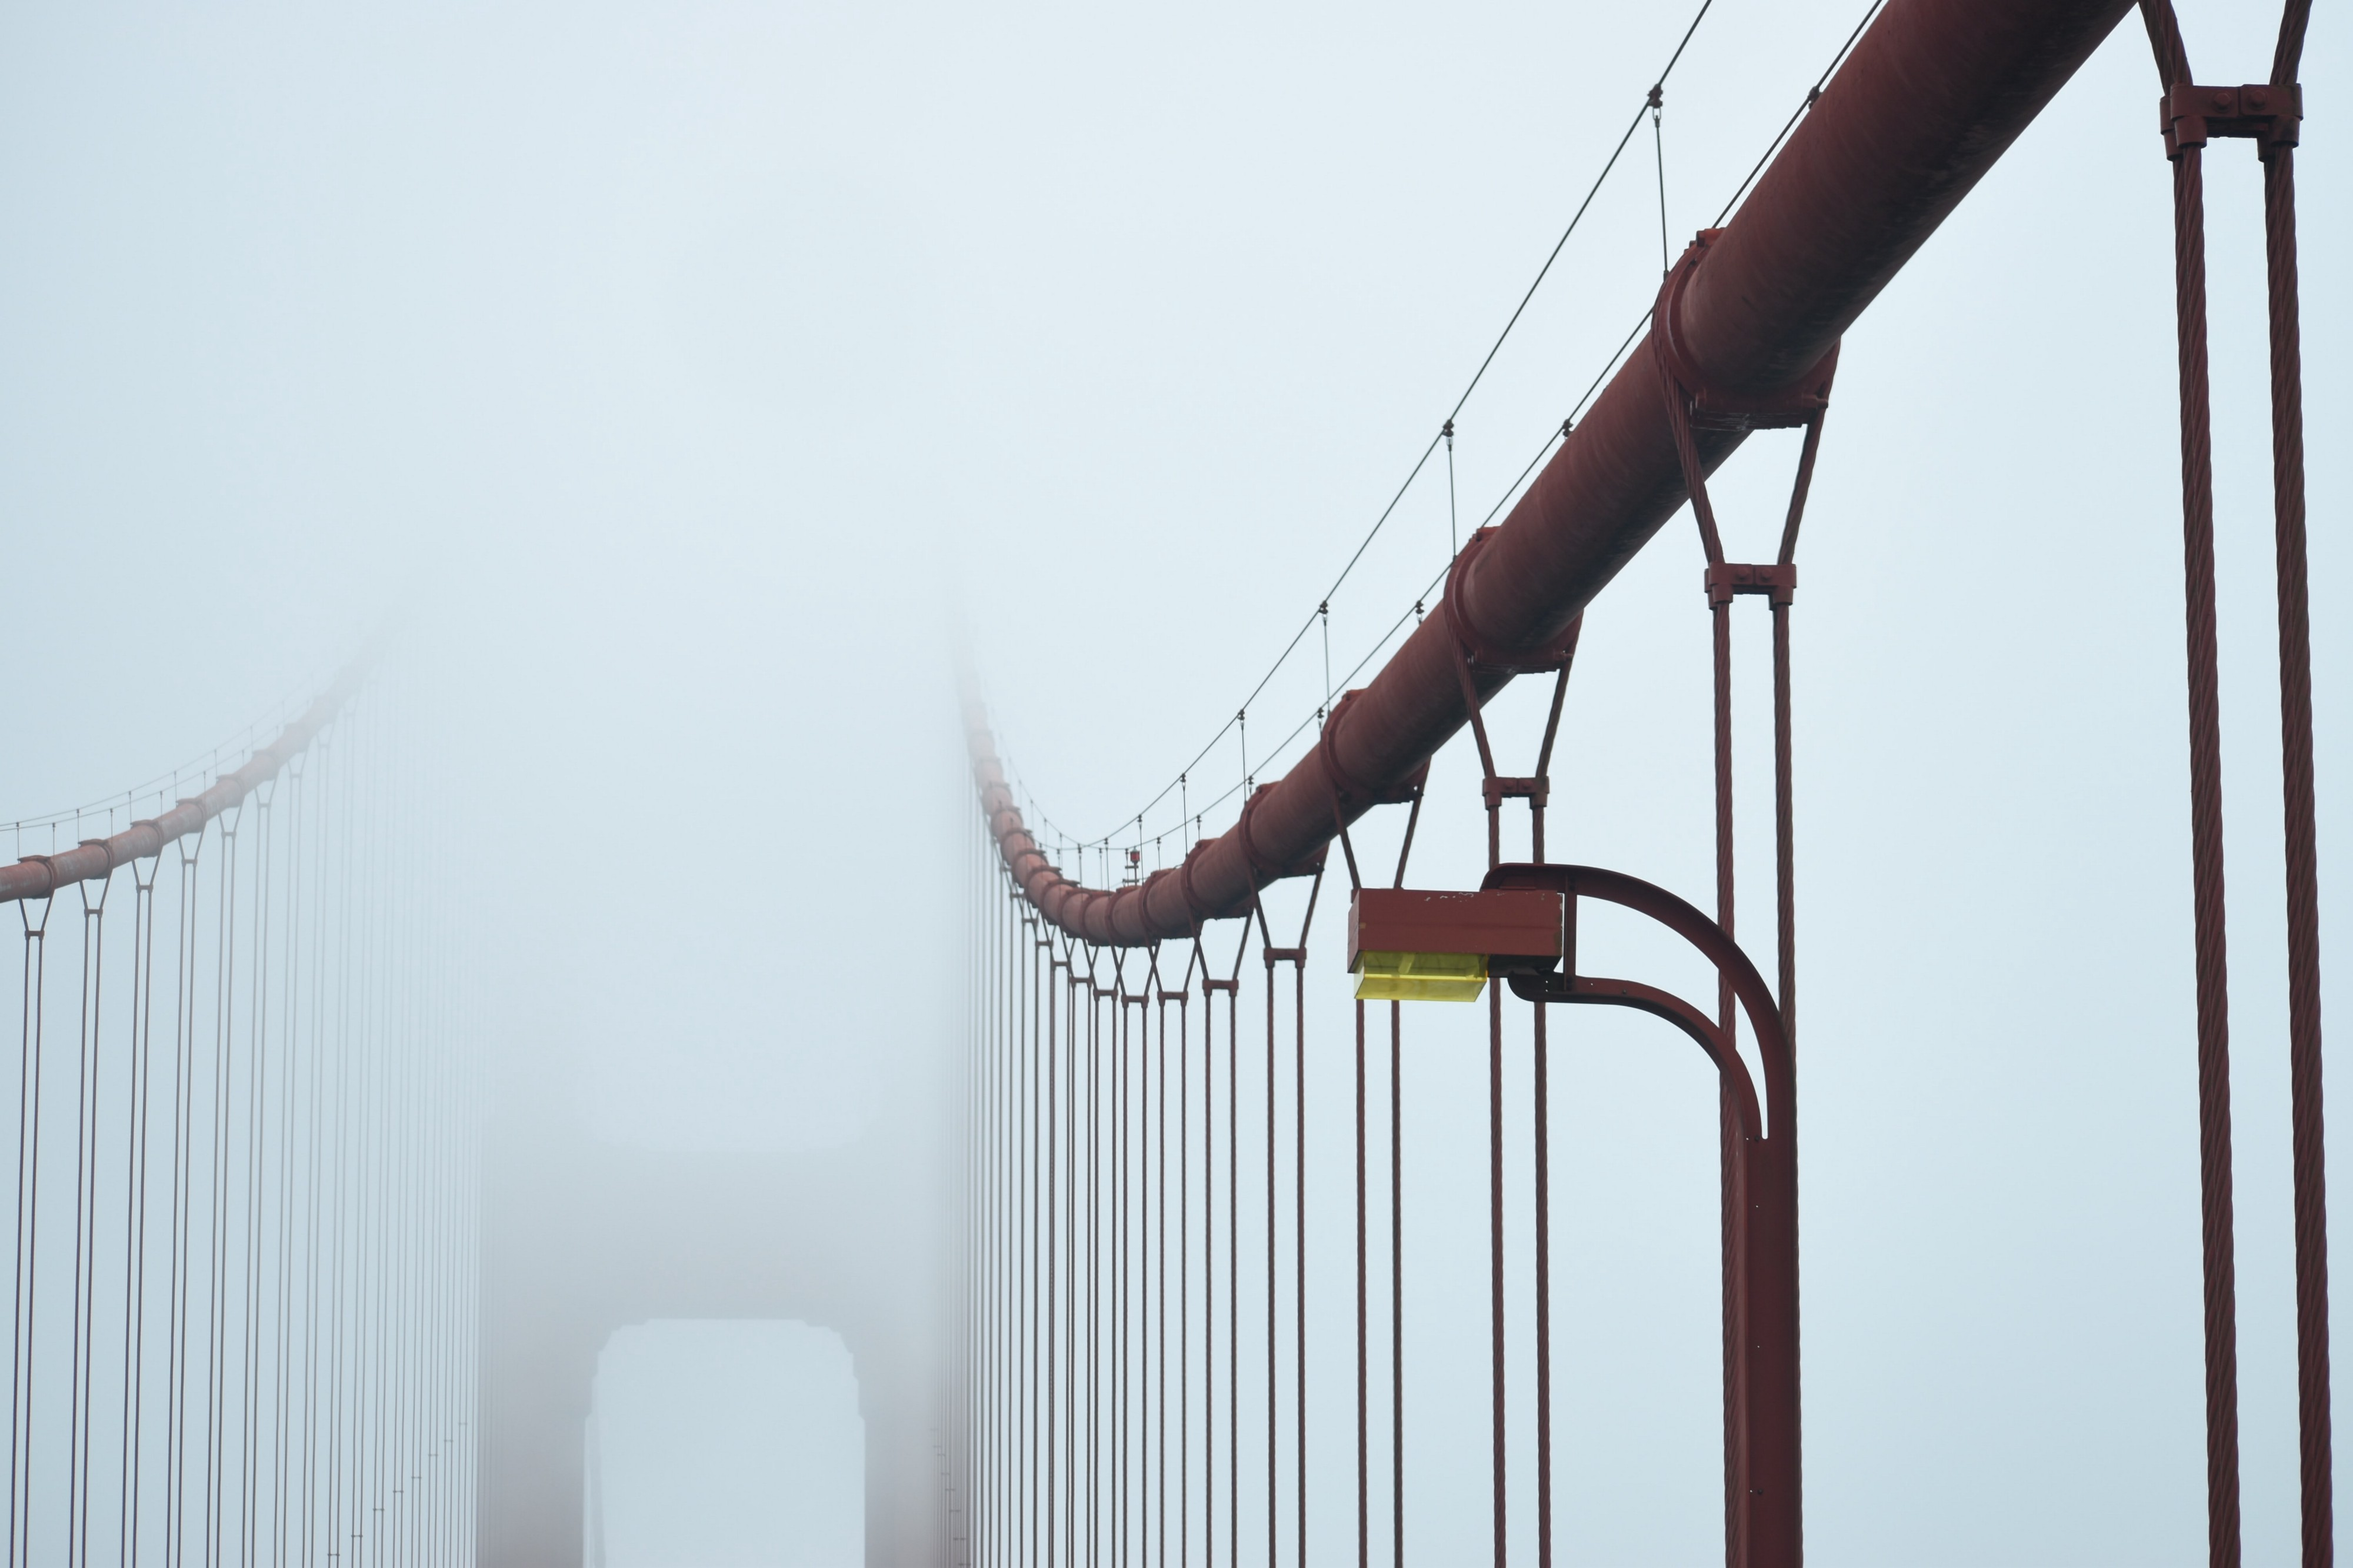 Fog covering red bridge, fading in the distance